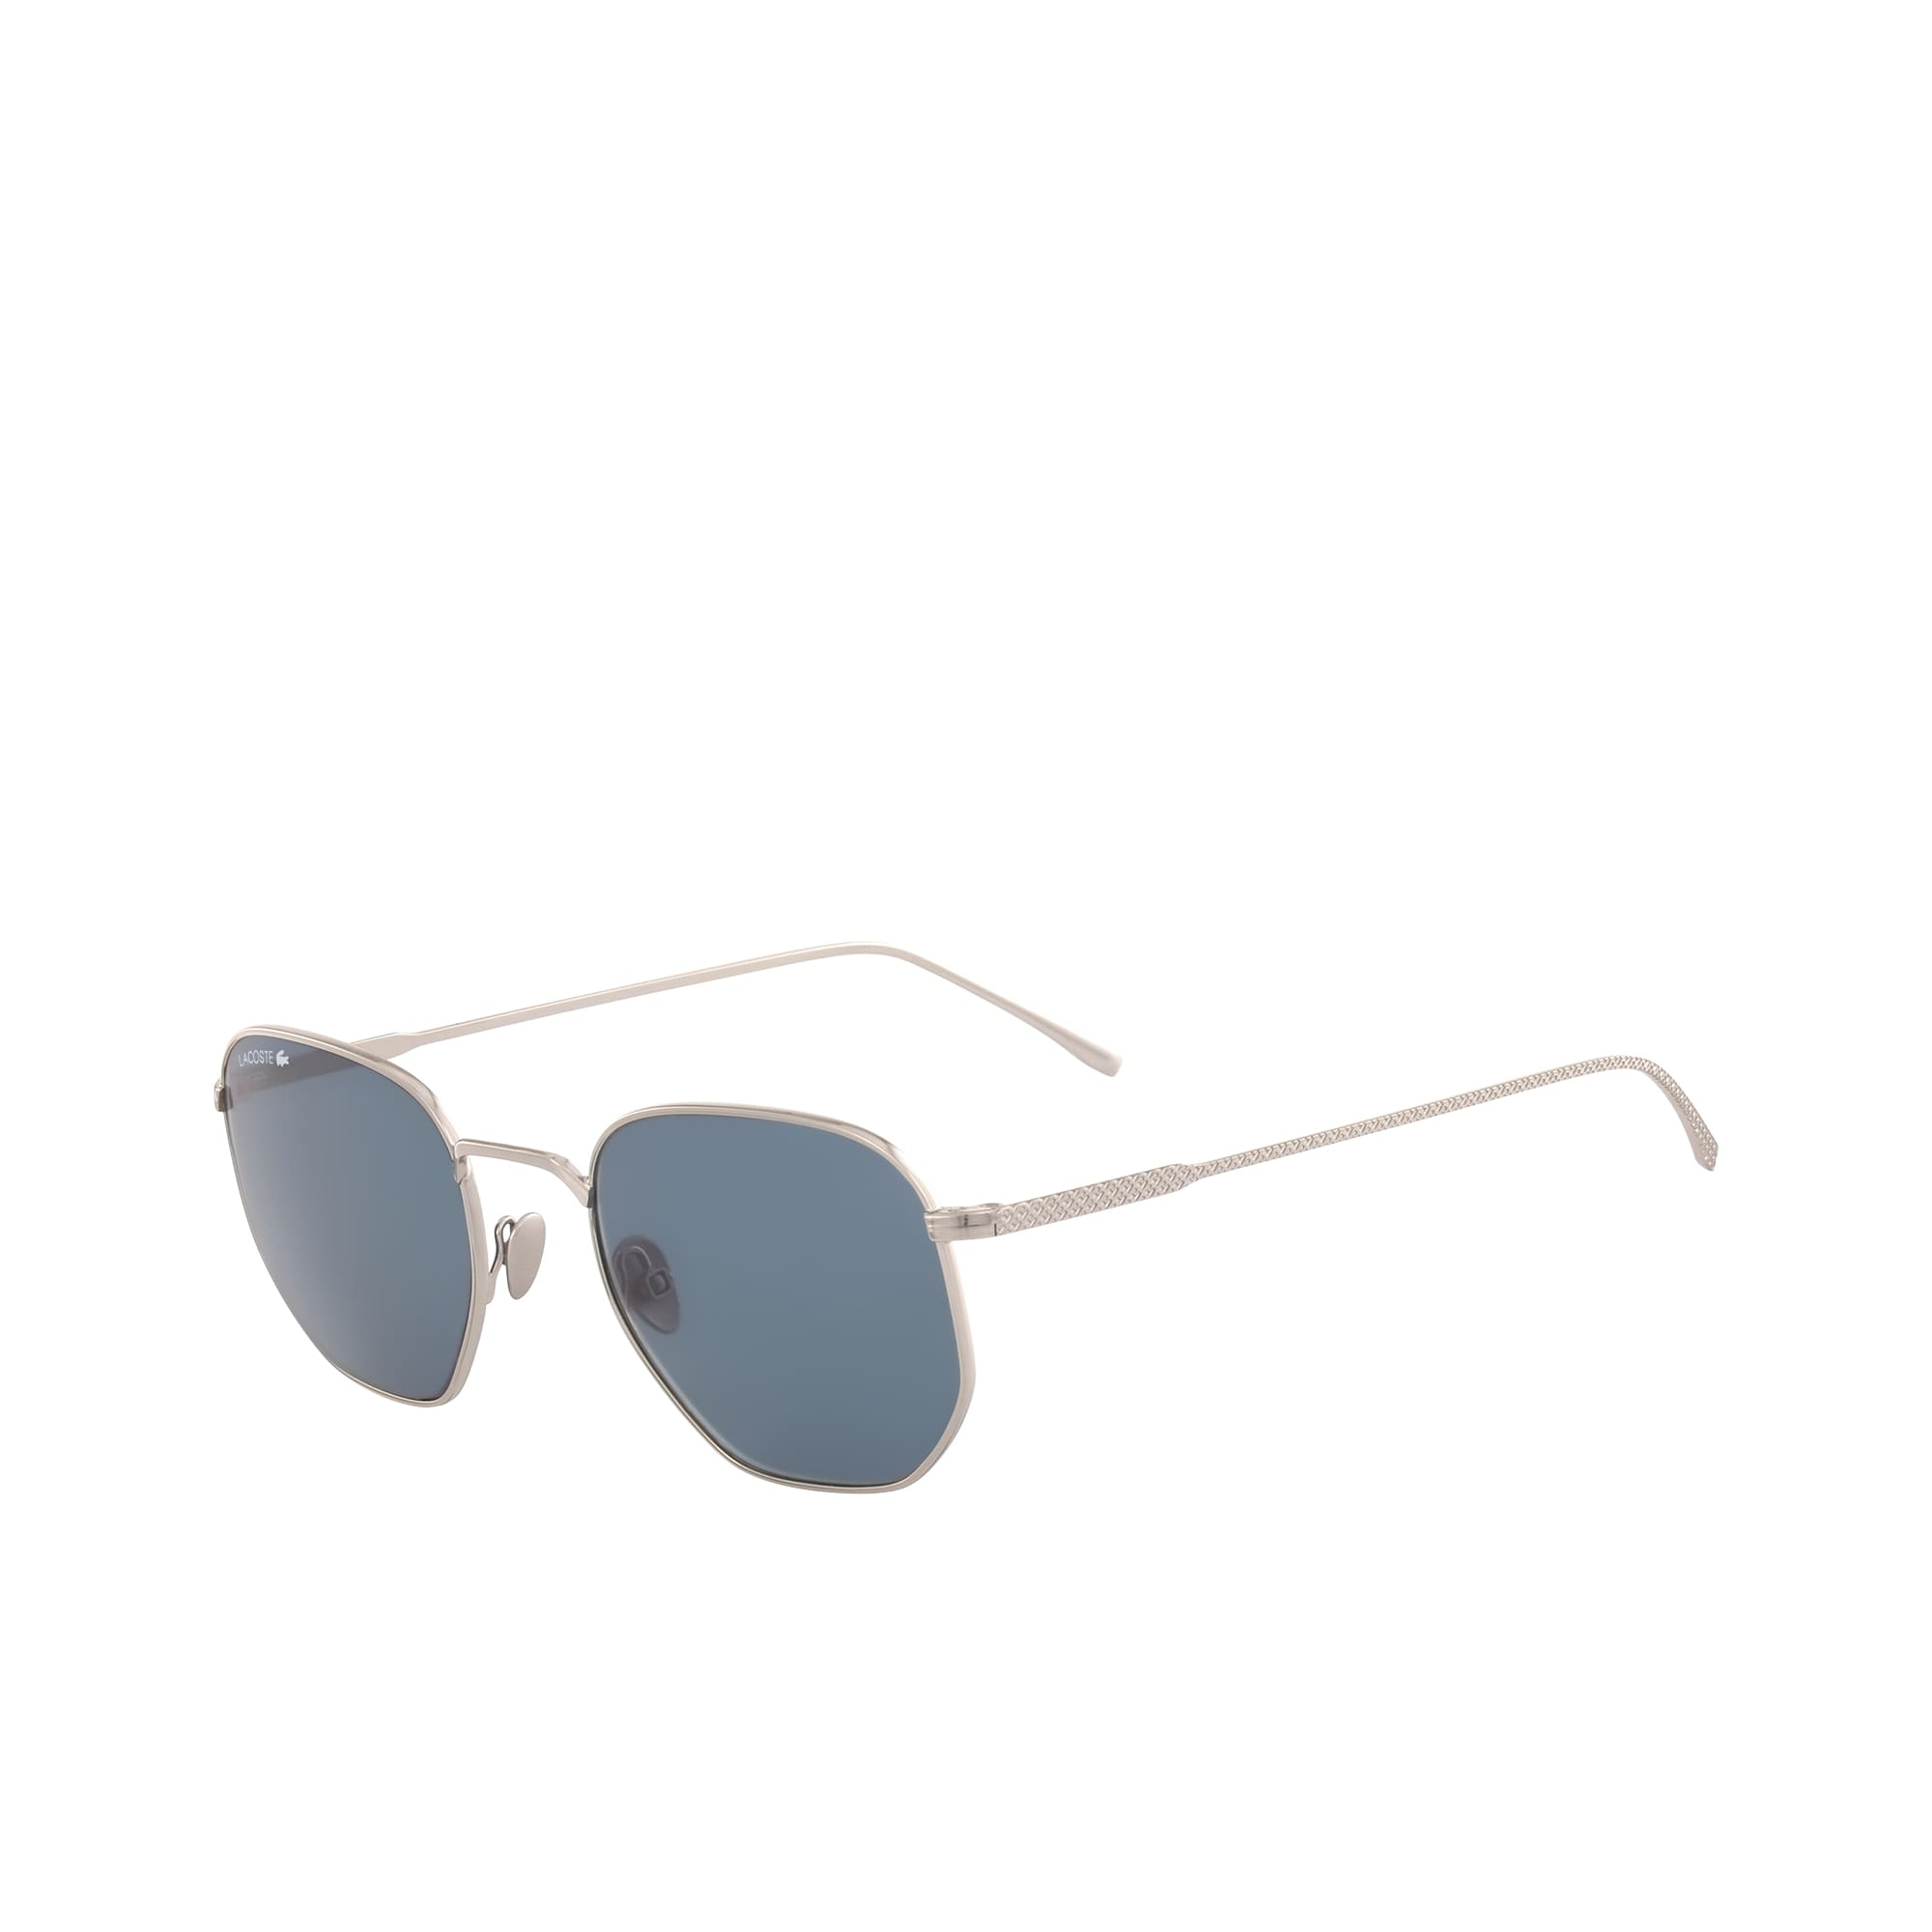 40df6cf7caa Sunglasses for men